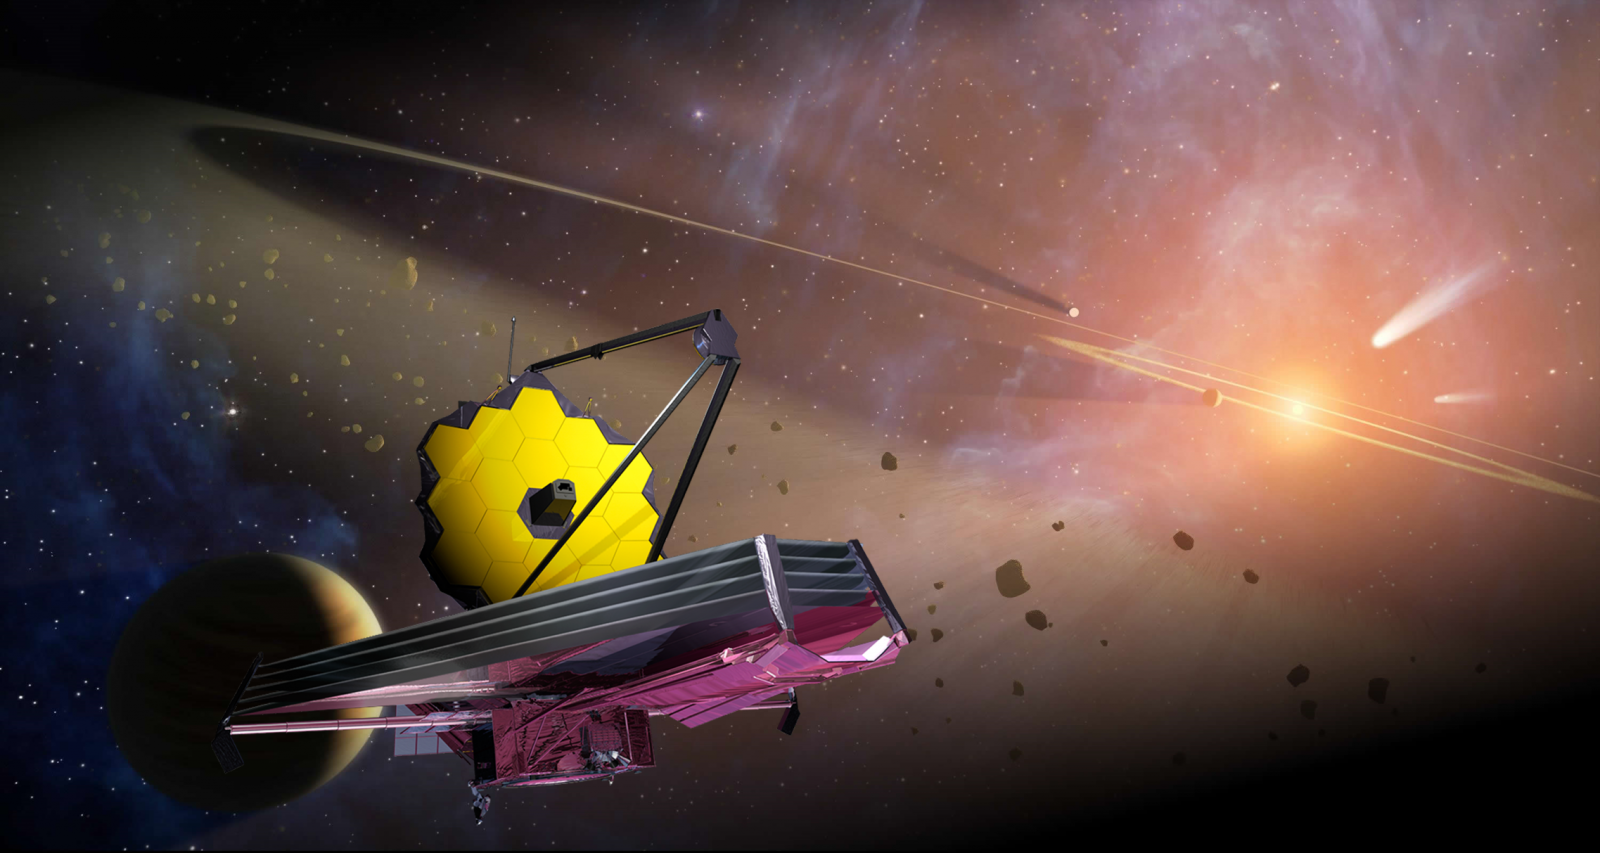 James Webb Space Telescope NASA image